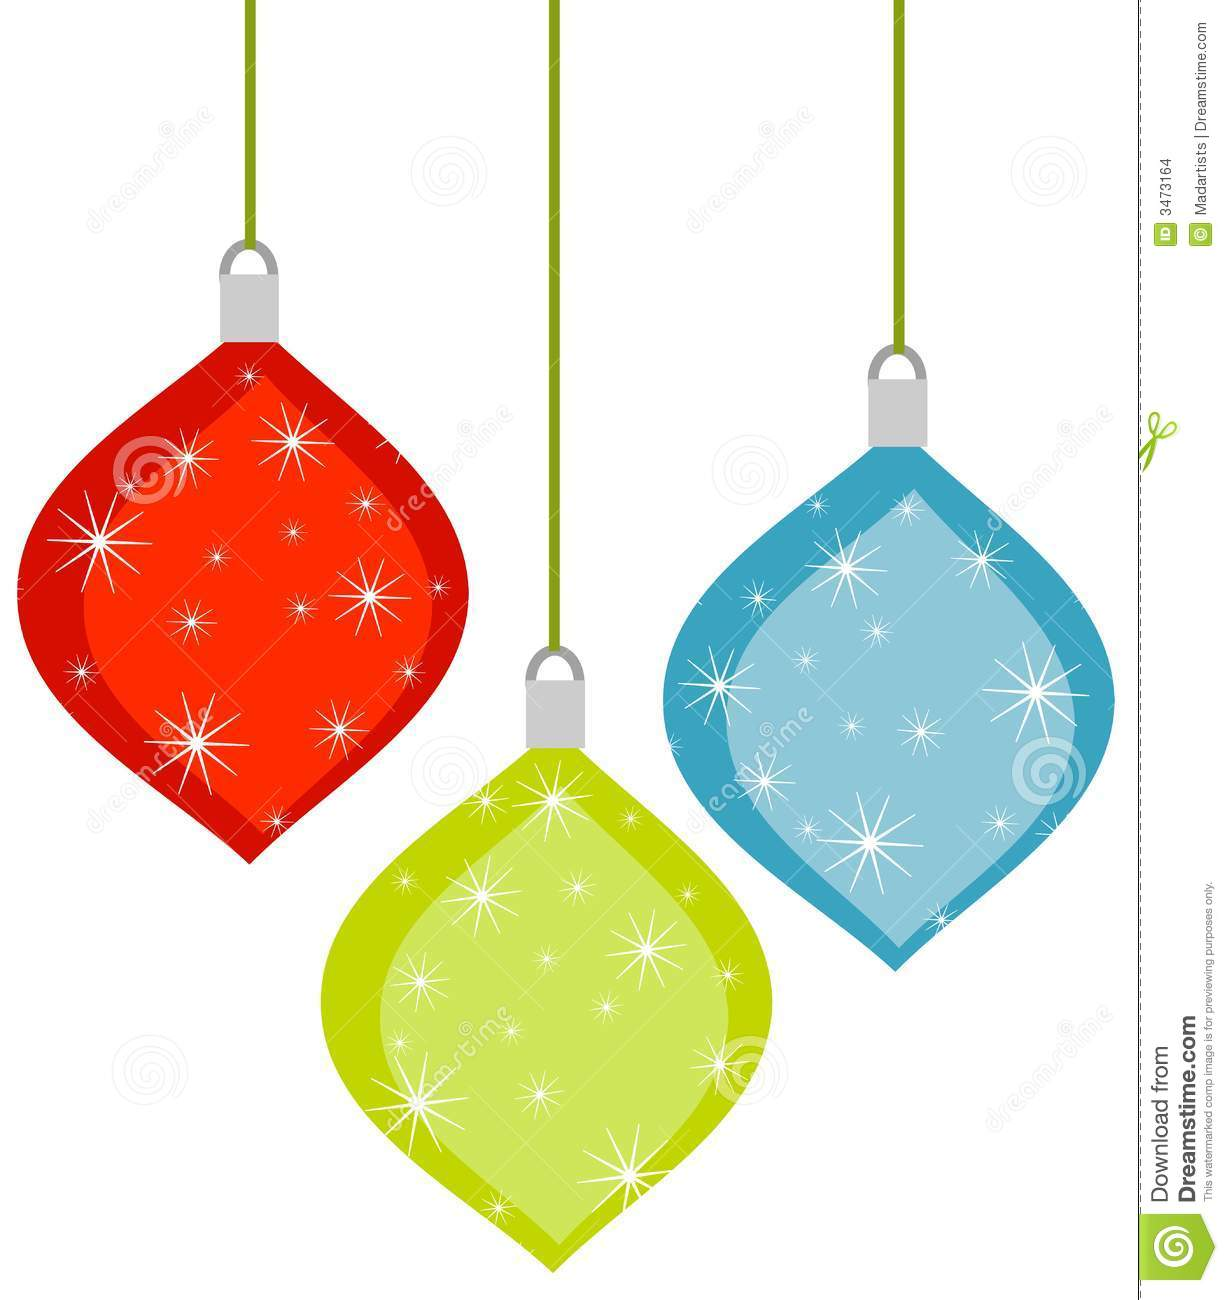 Christmas Tree Ornament Clipart.